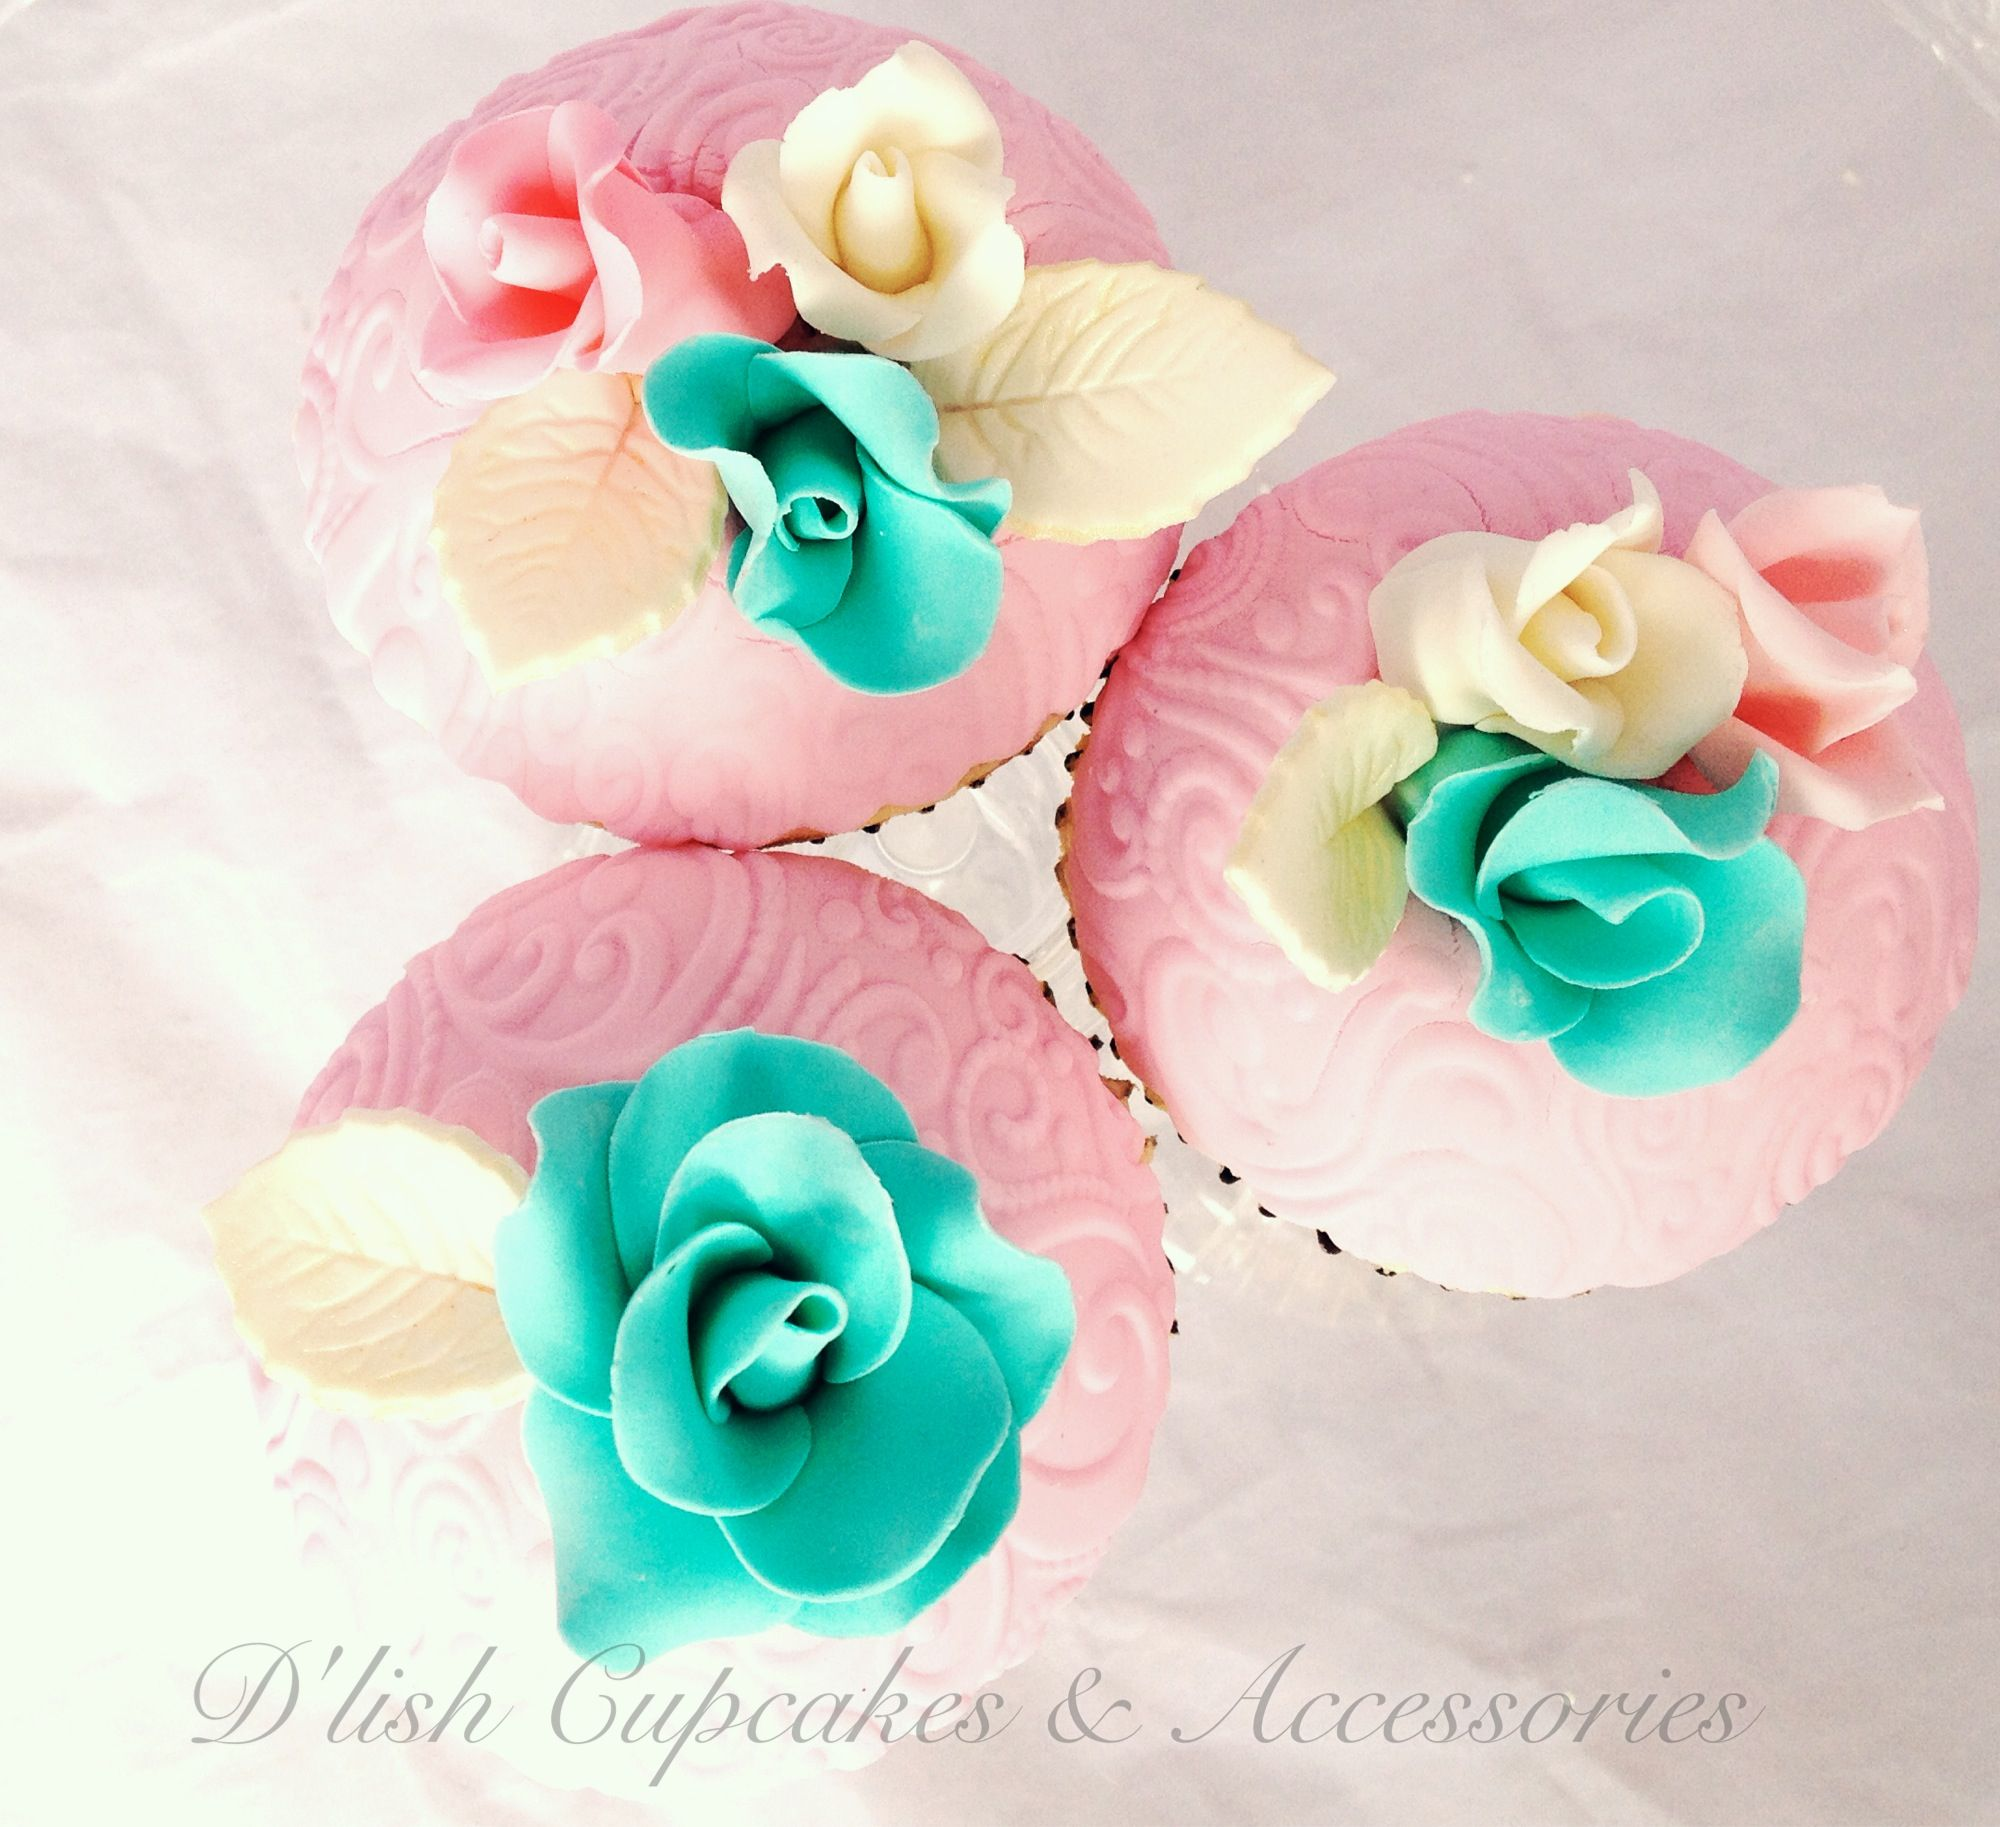 Pink, turquoise white and gold cupcakes. Rose detail. Bespoke ...